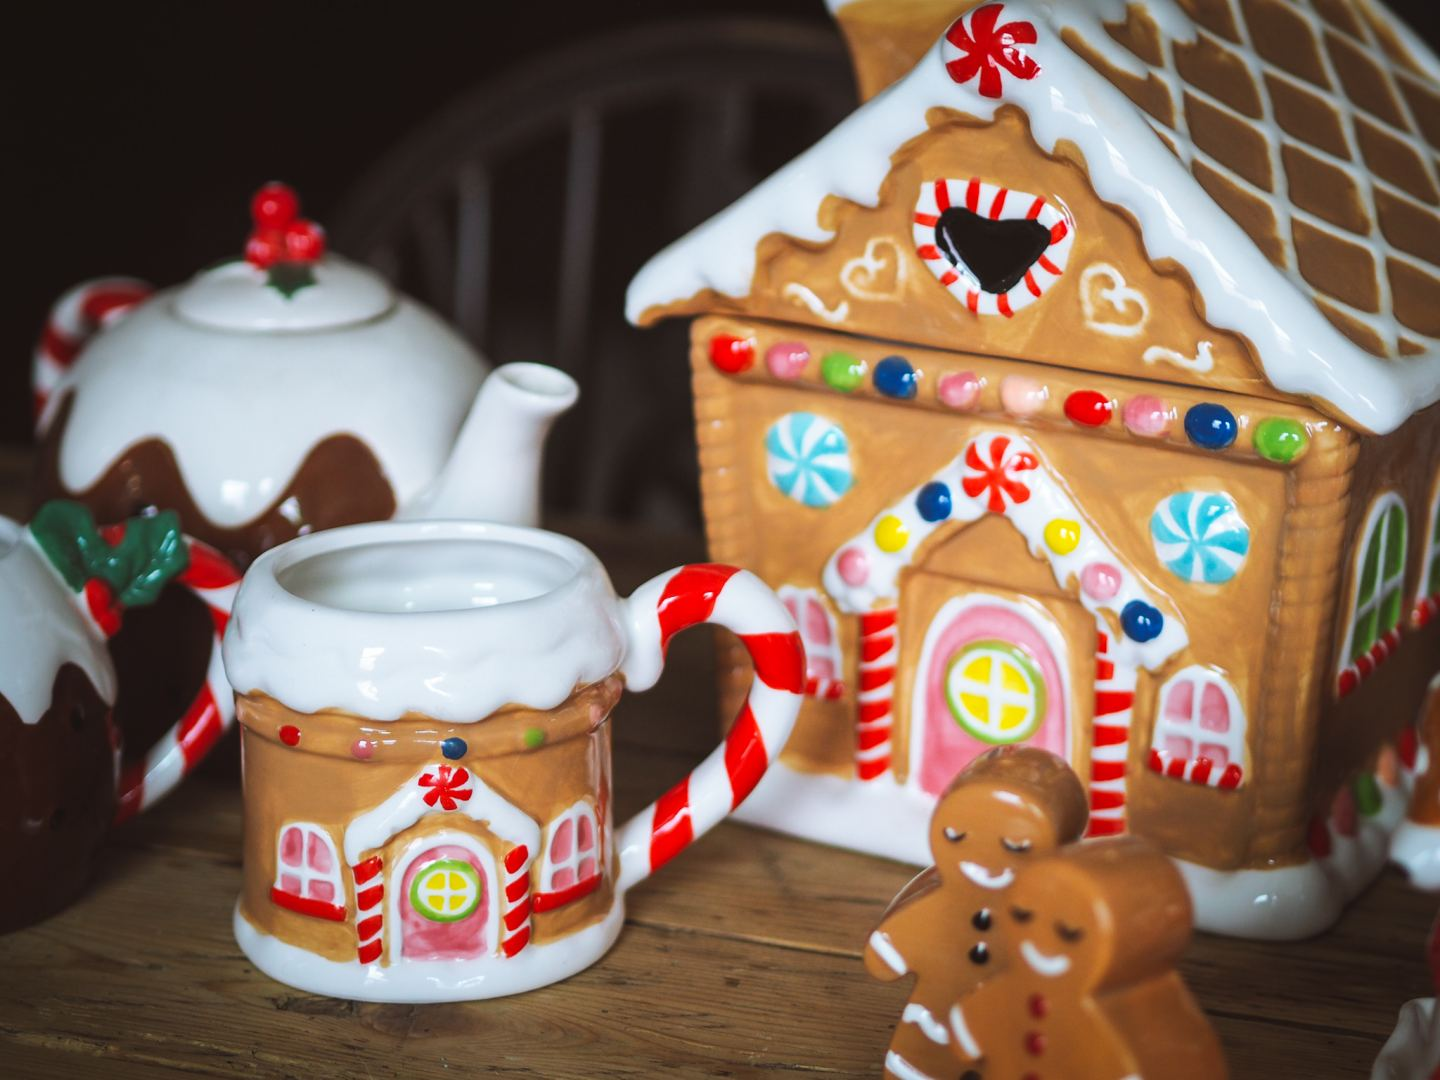 My Christmas Crockery Collection gingerbread house cookie jar